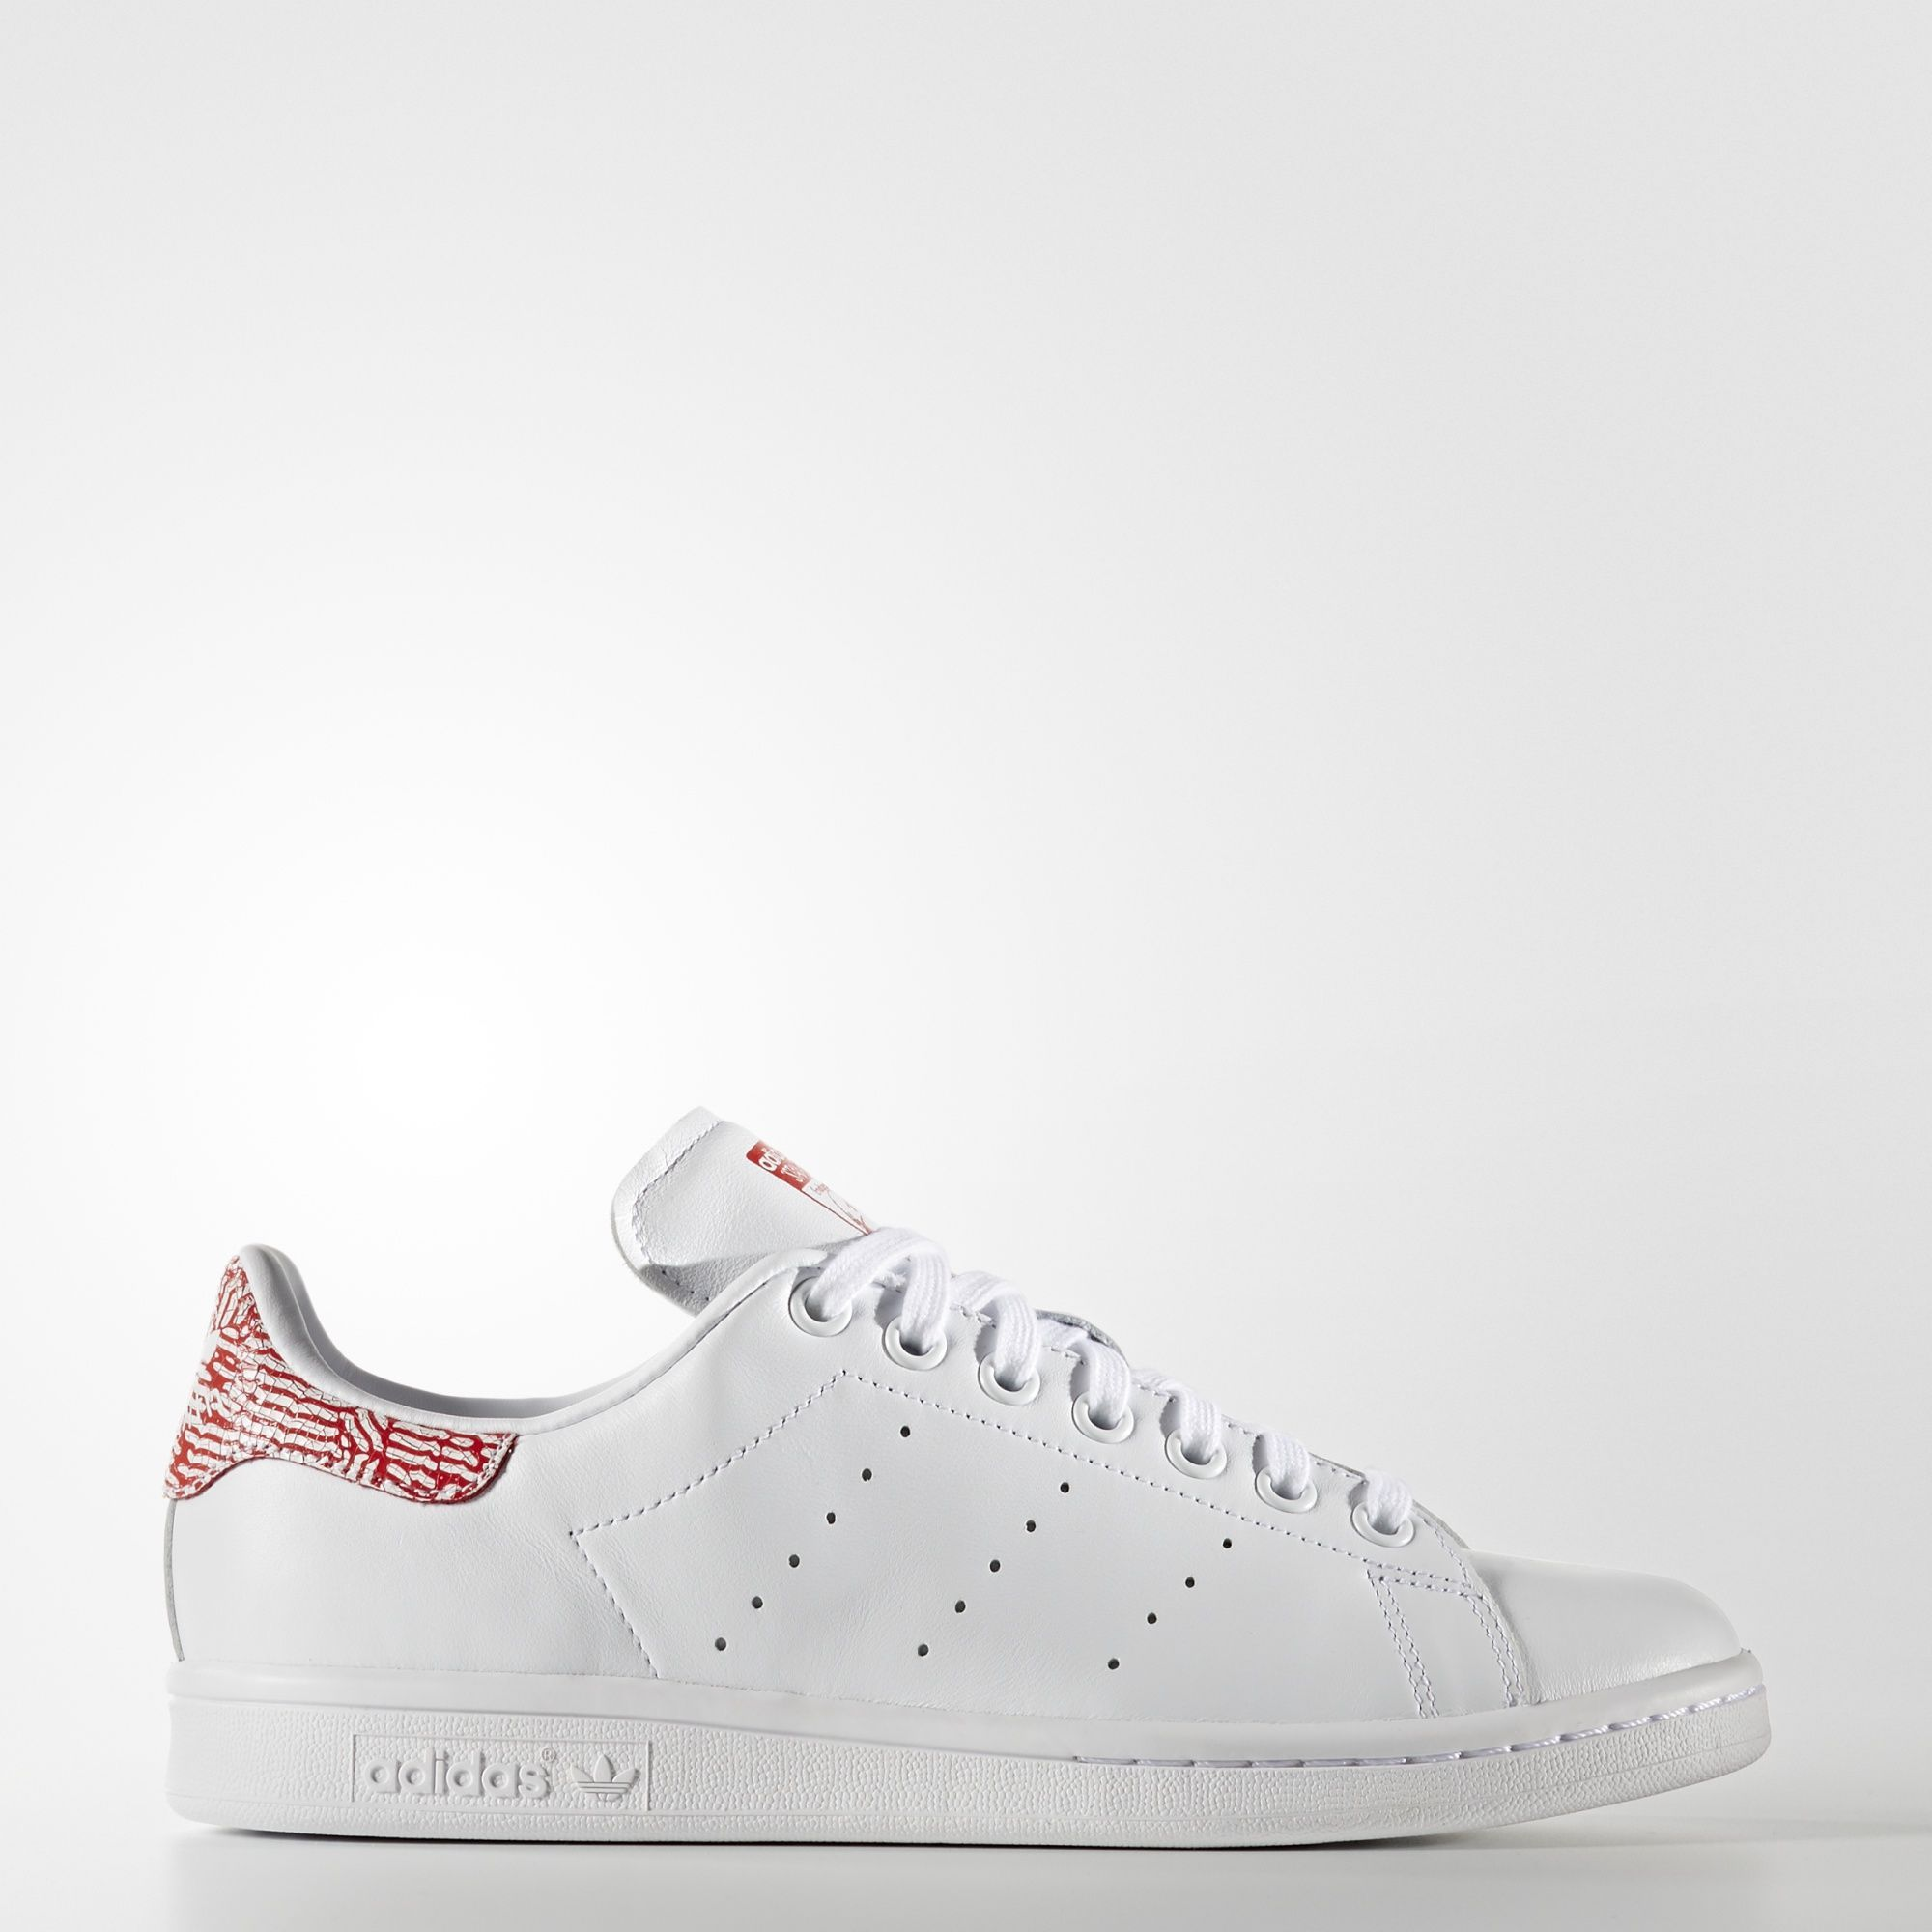 adidas - Stan Smith Shoes   SHOES.   Pinterest   Adidas stan smith ... 55d5199aee64